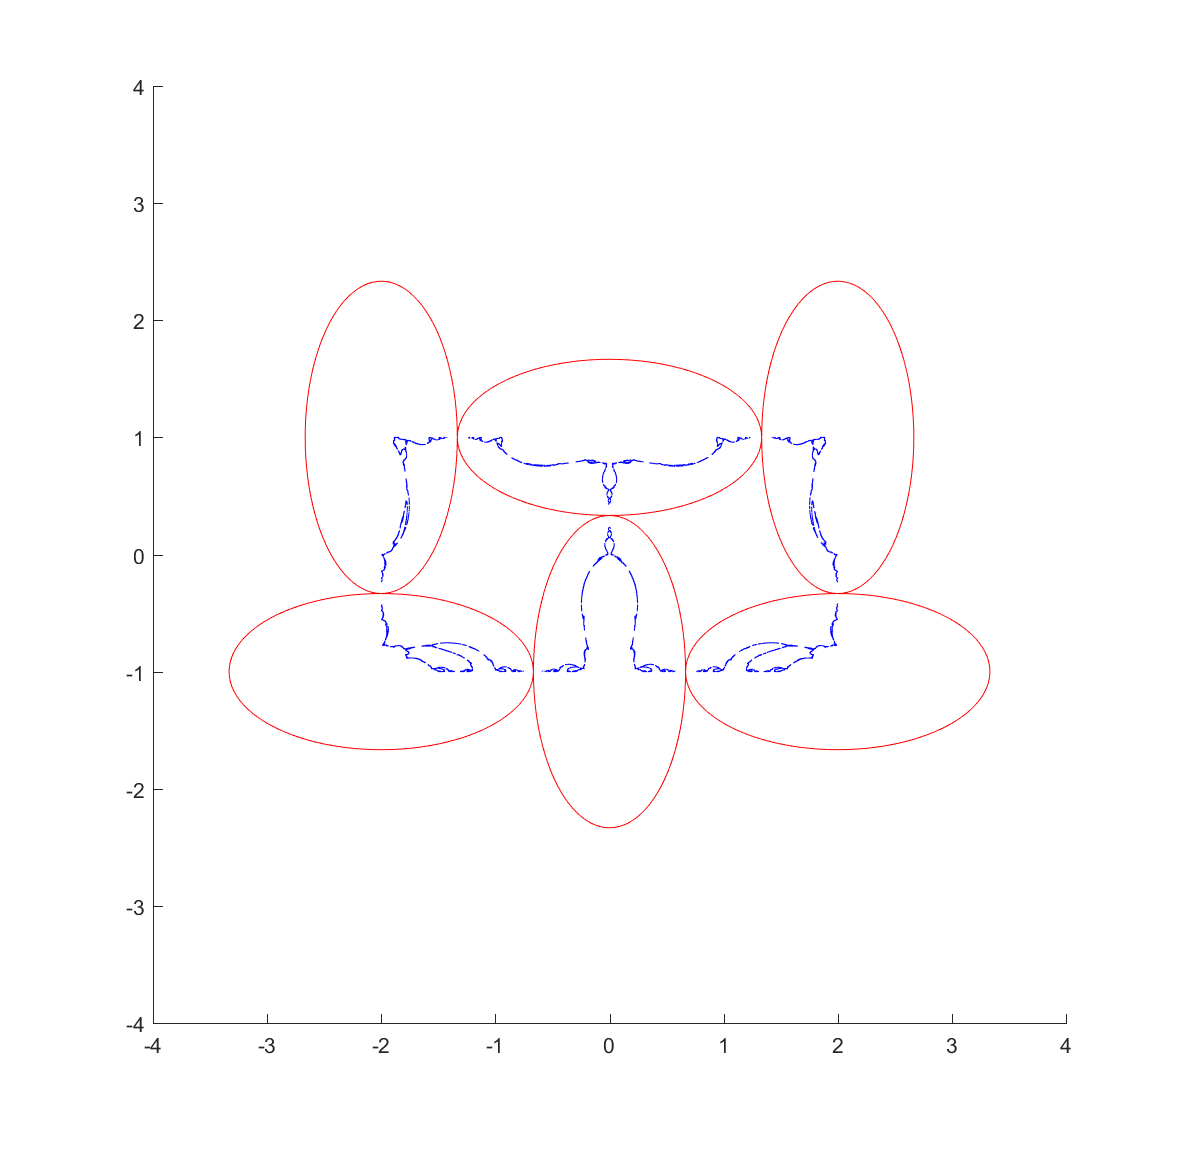 Invariant set fractal (blue) for inversion in the red ellipses. Generated using an IFS algorithm.